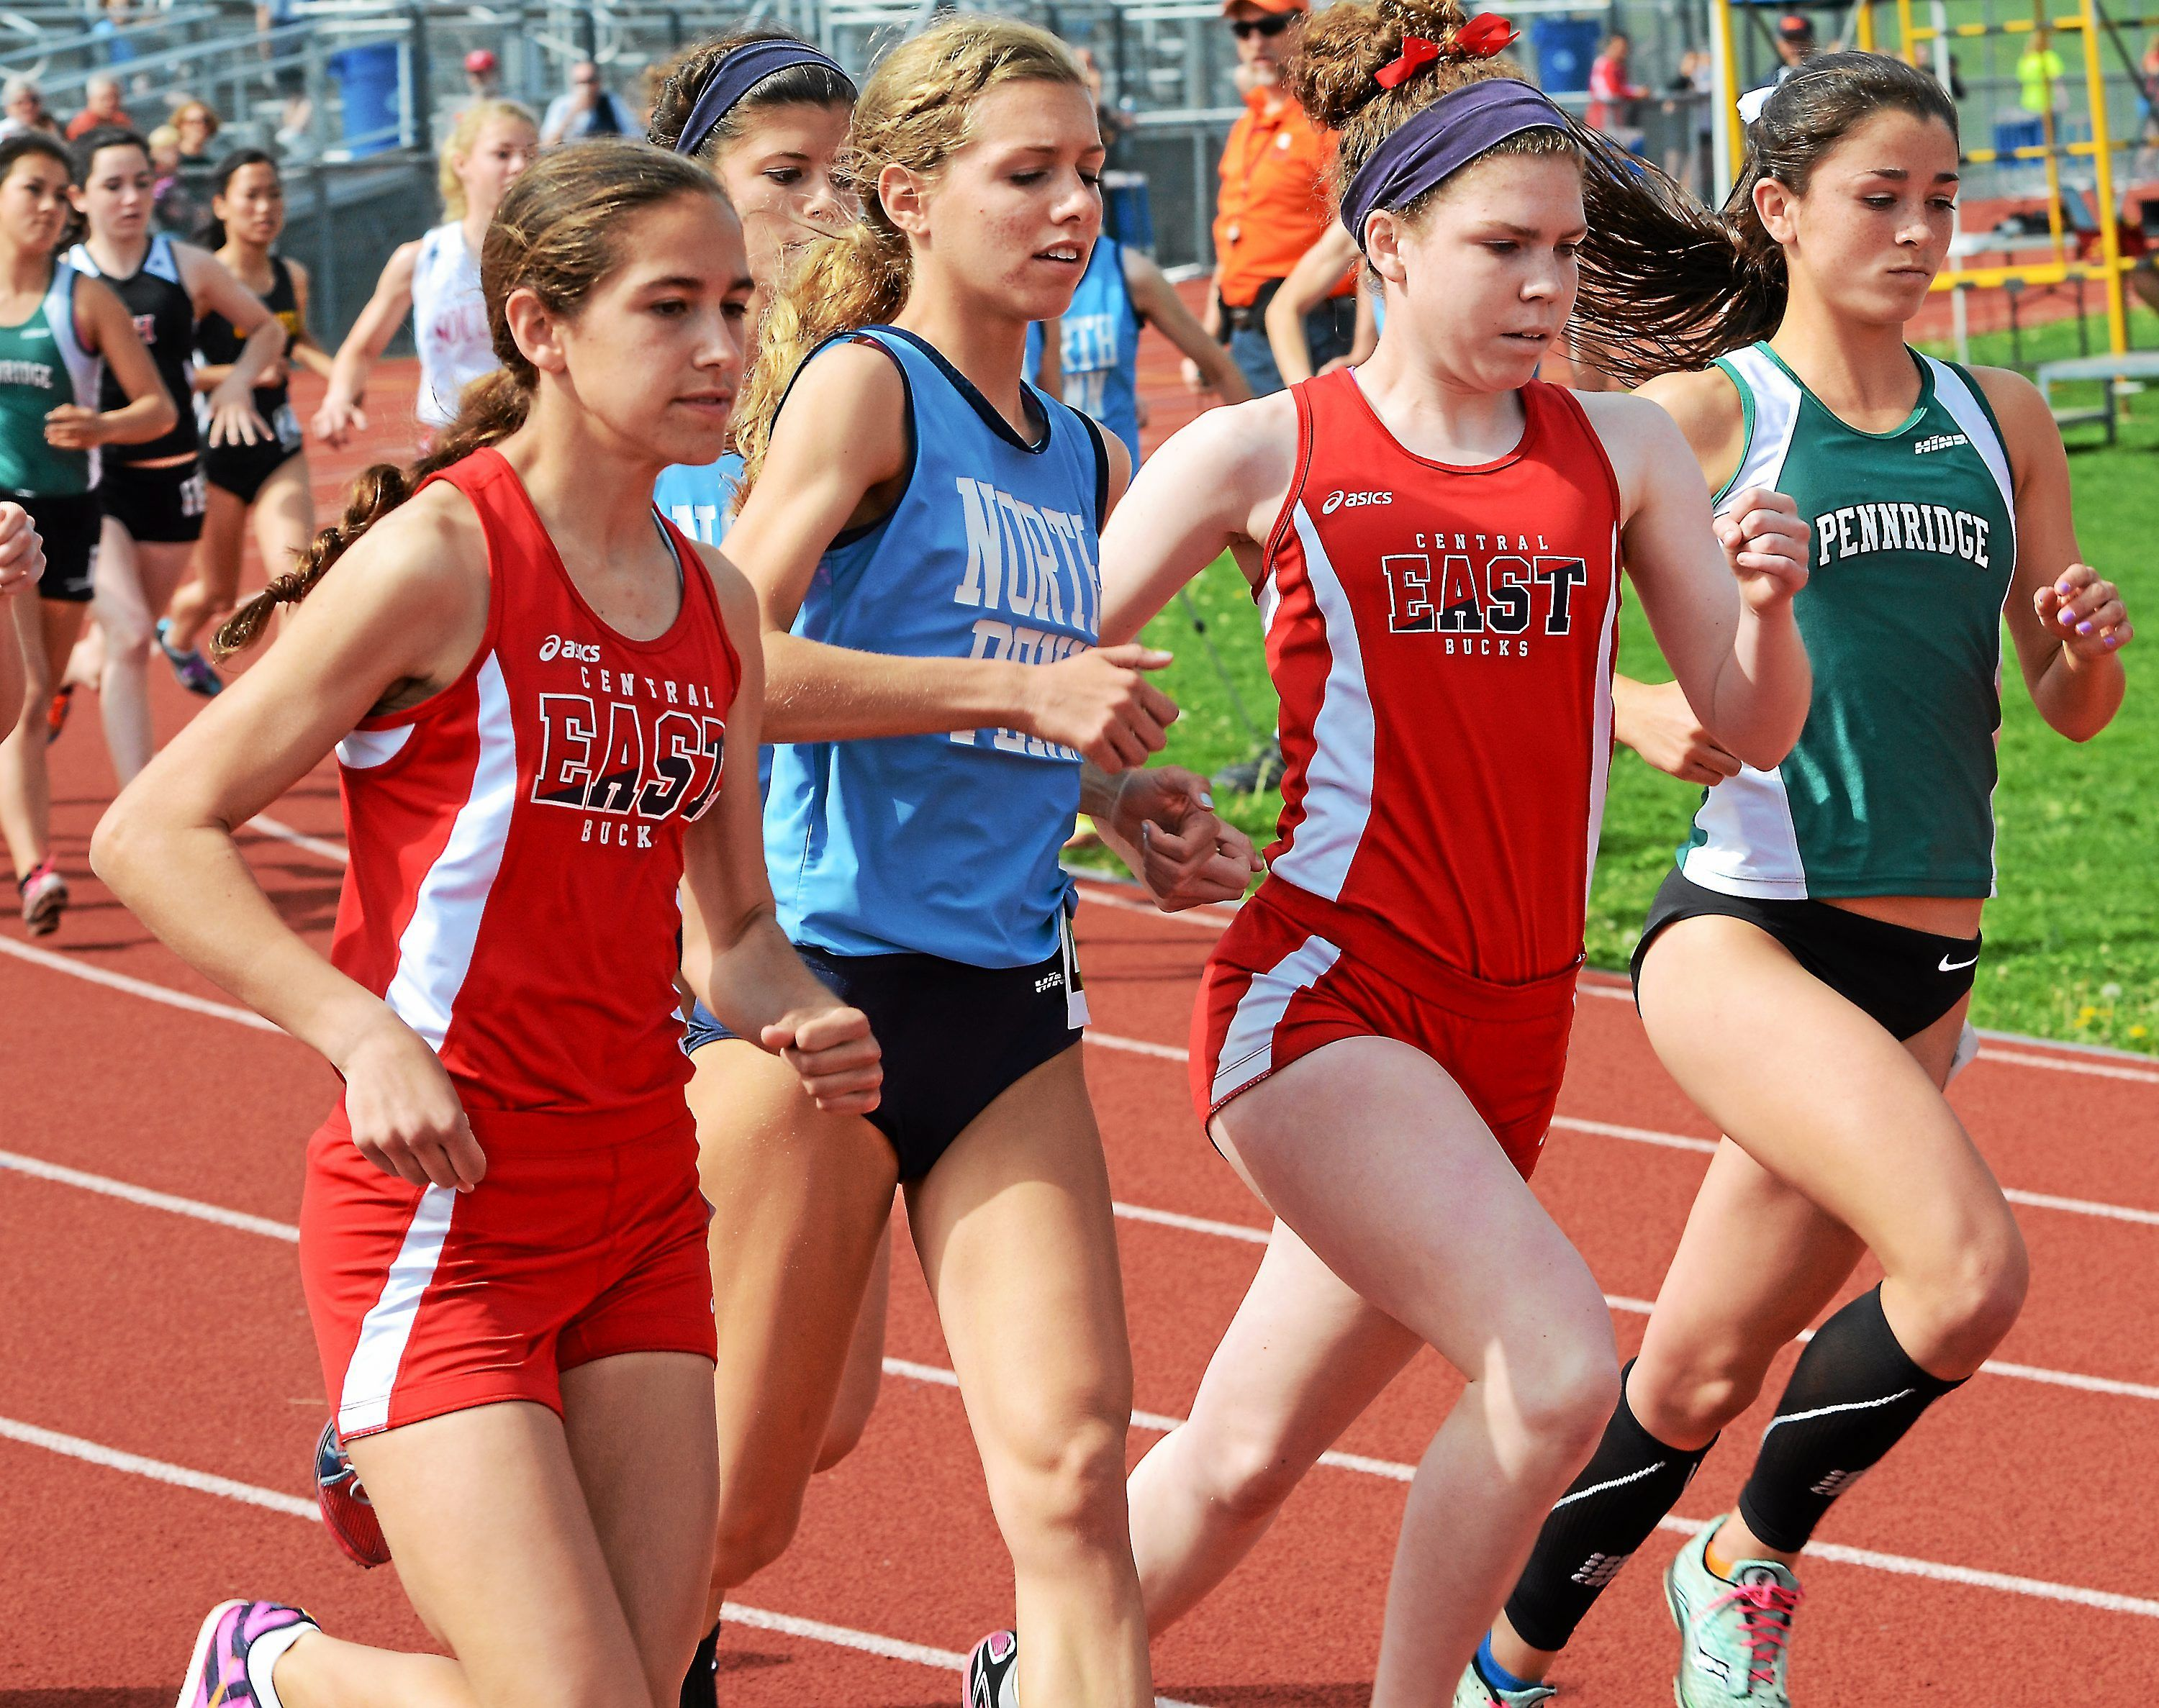 TRACK AND FIELD North Penn boys, CB East girls take 1st